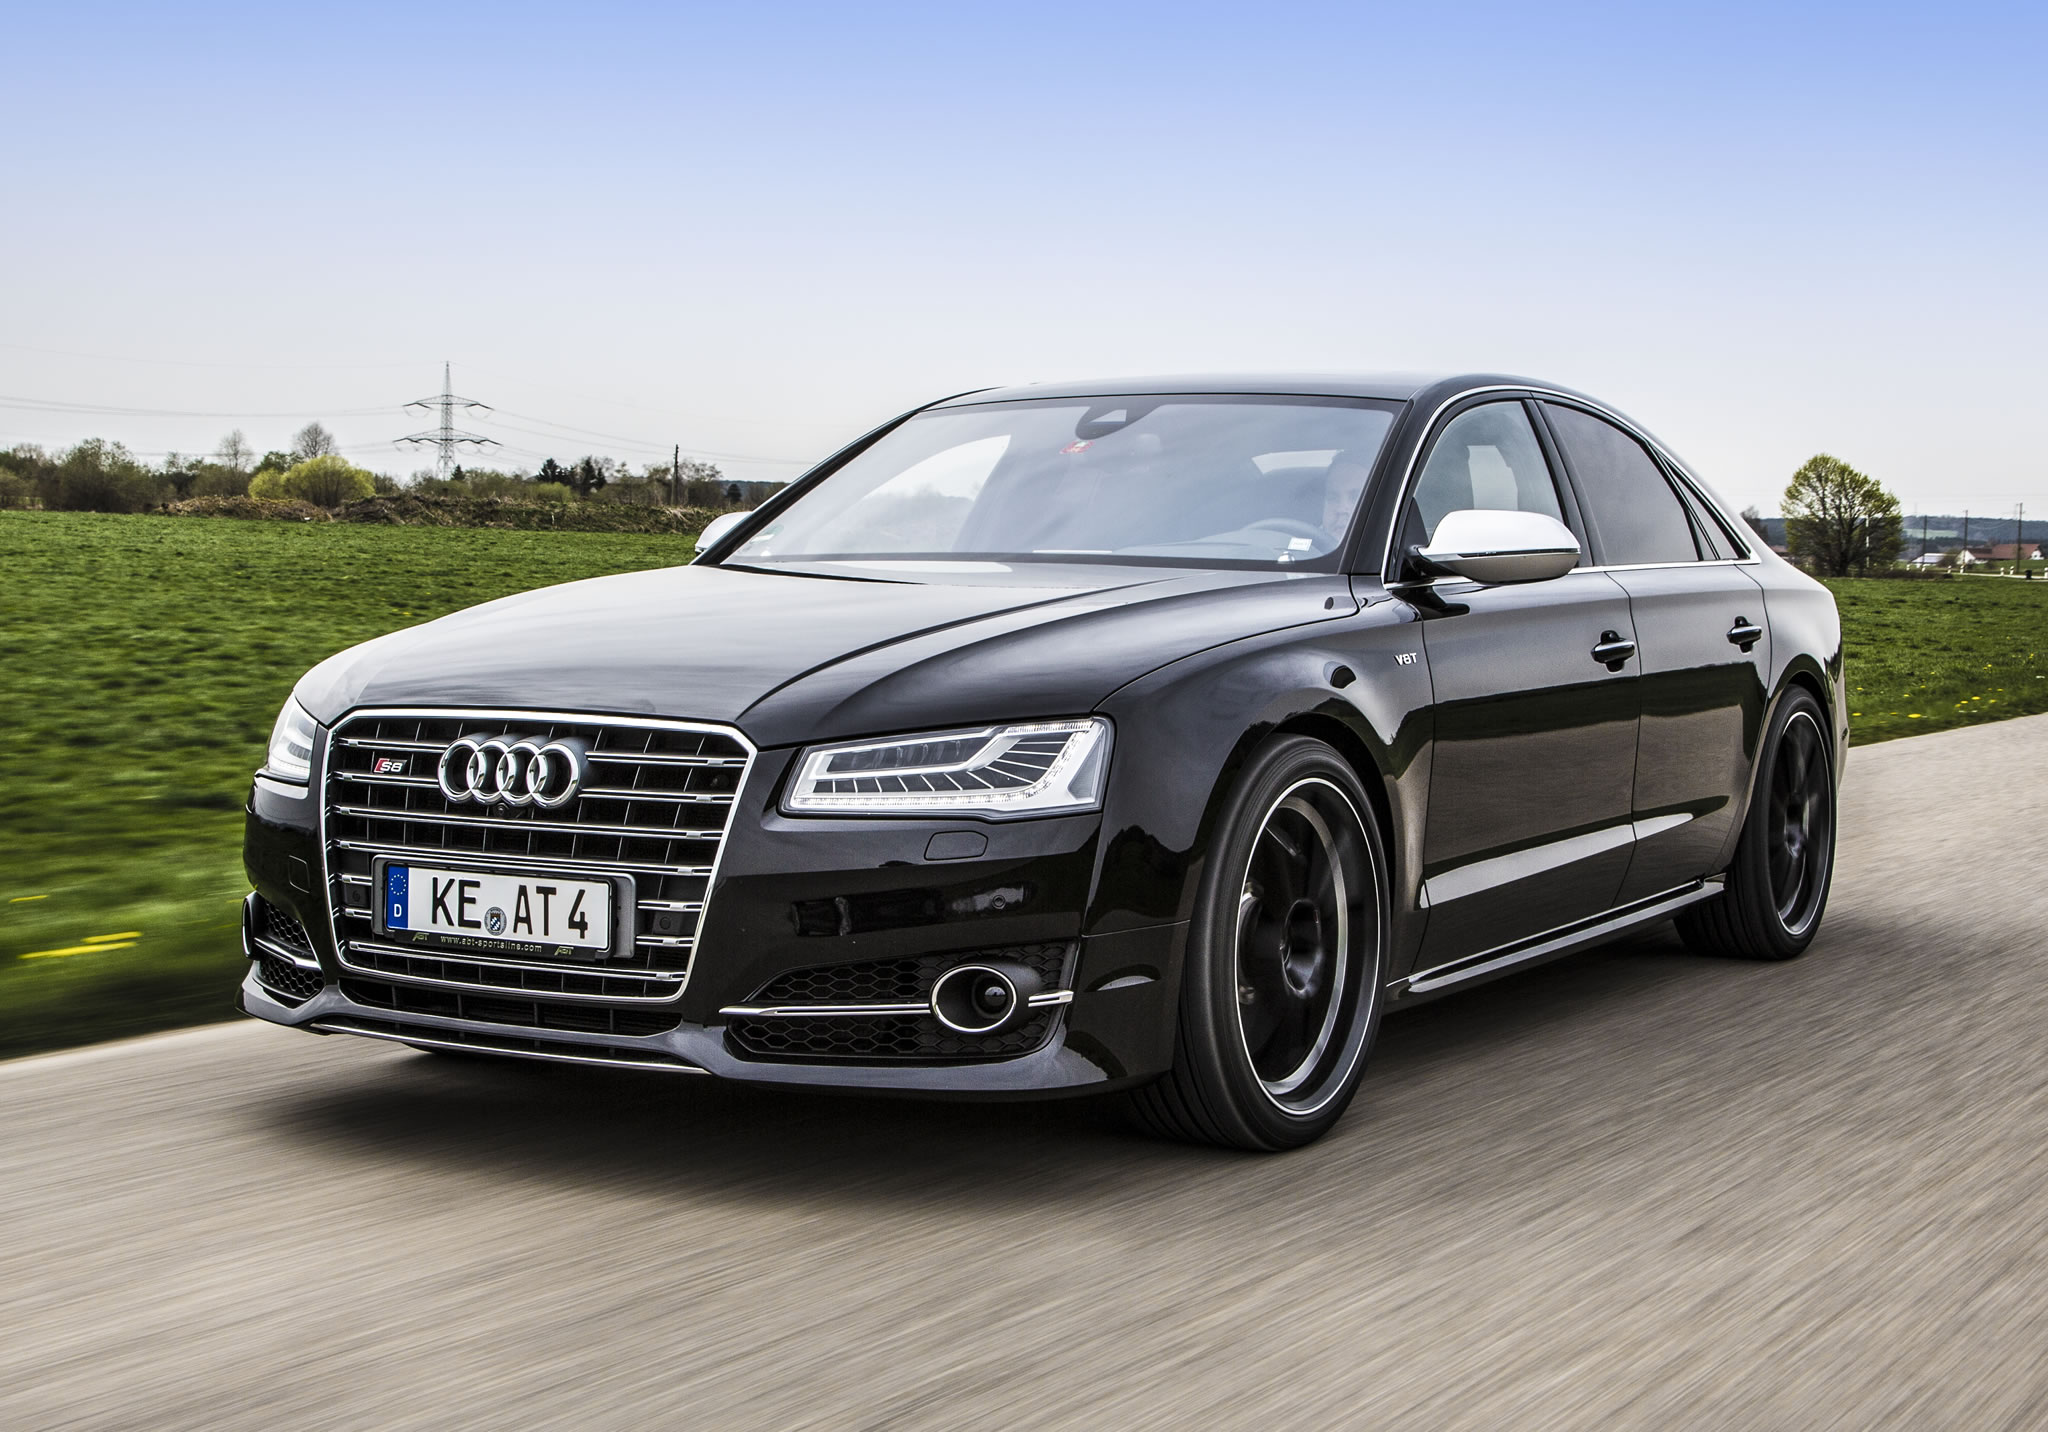 2015 Audi S8 by ABT Photos, Specs and Review - RS